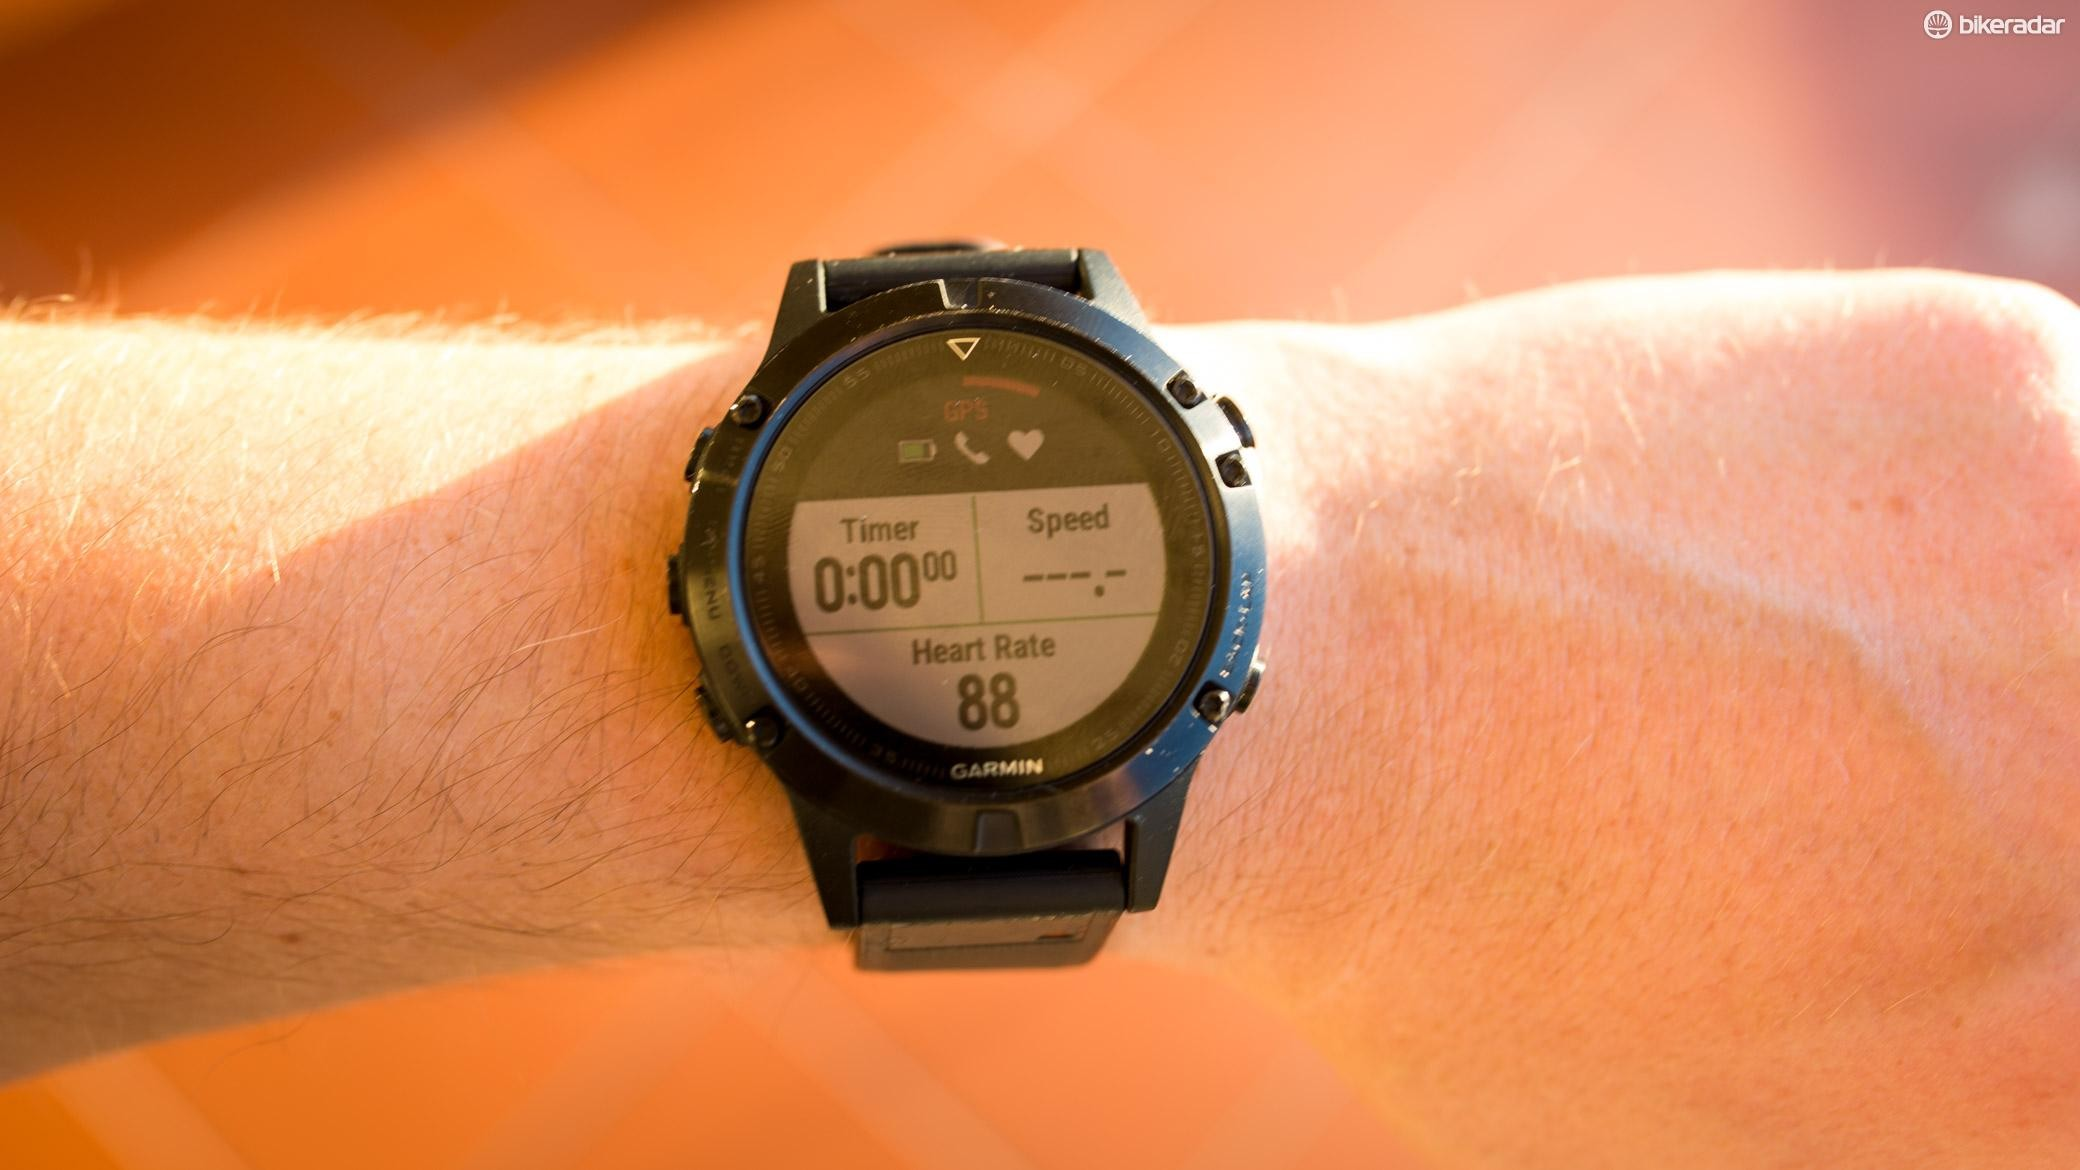 In an activity mode, the watch can display up to 19 pages of four metrics